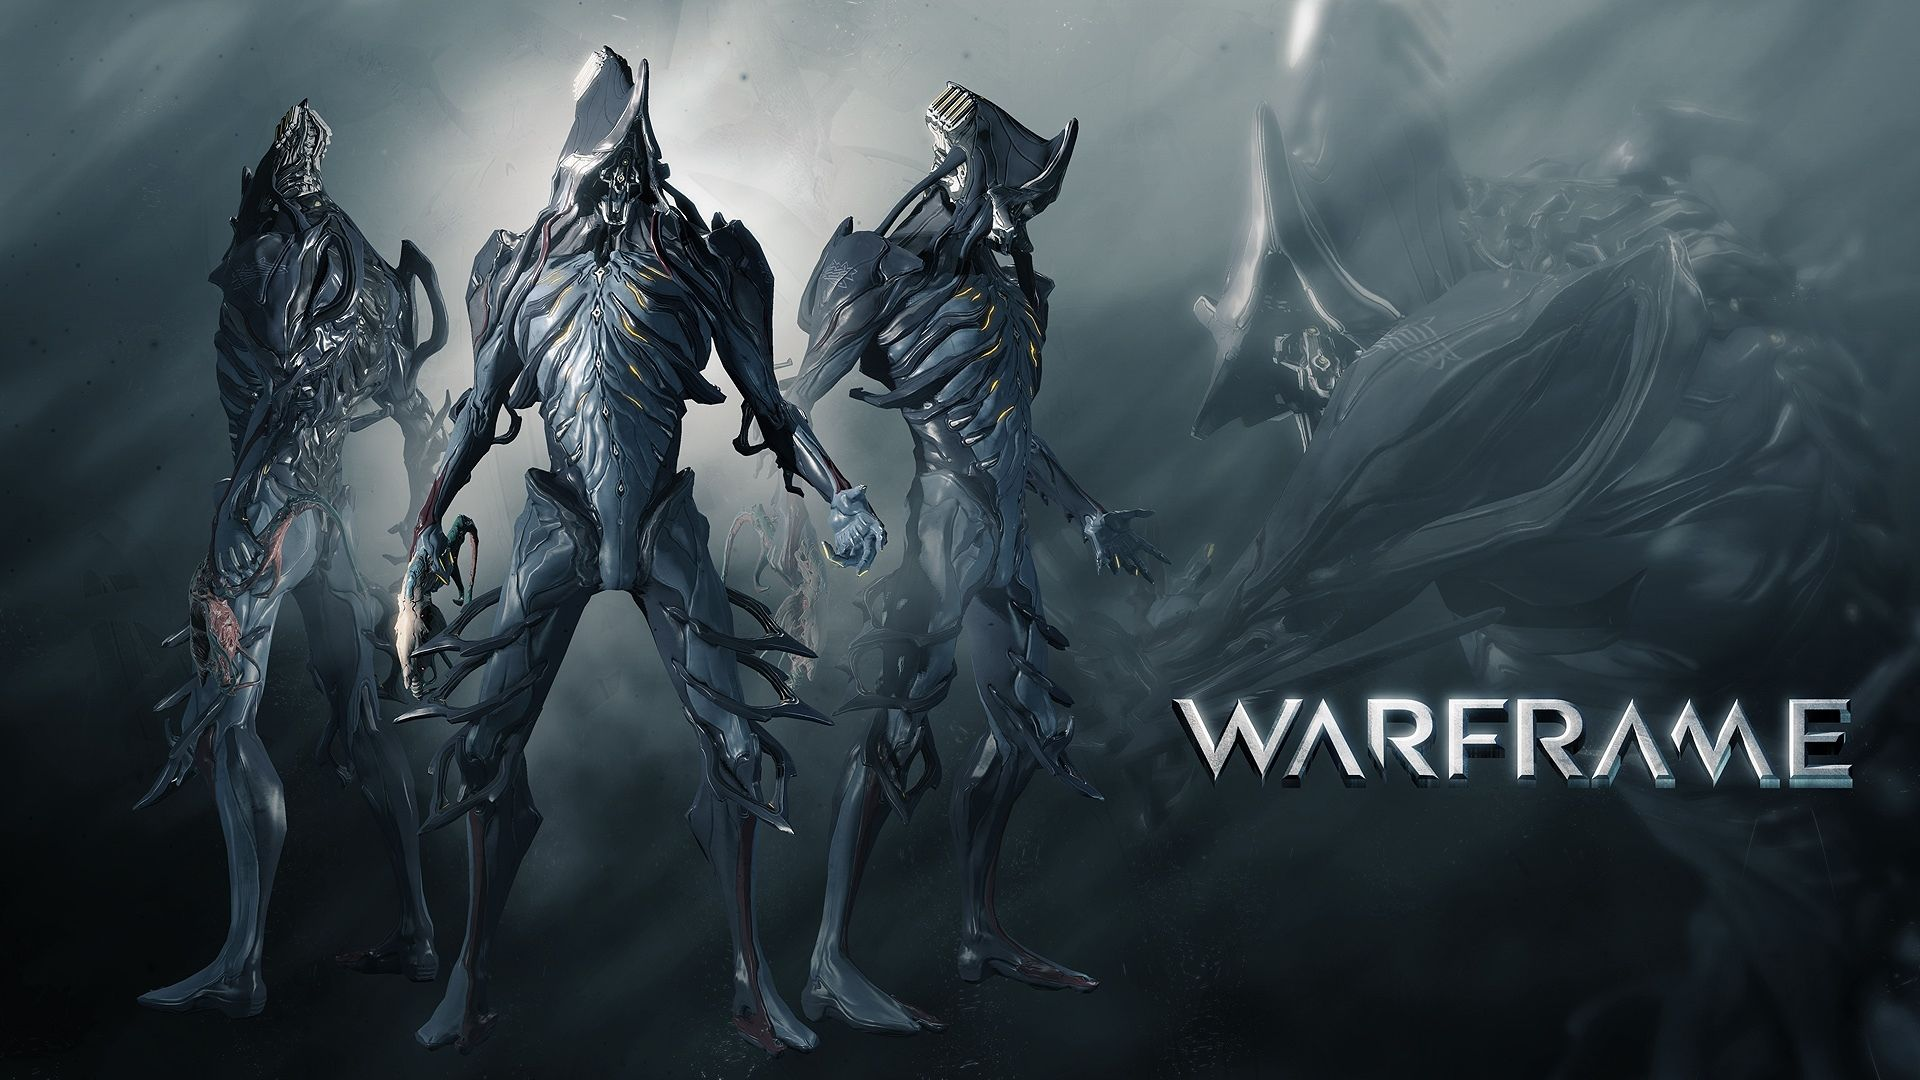 Warframe Wallpapers High Quality Resolution